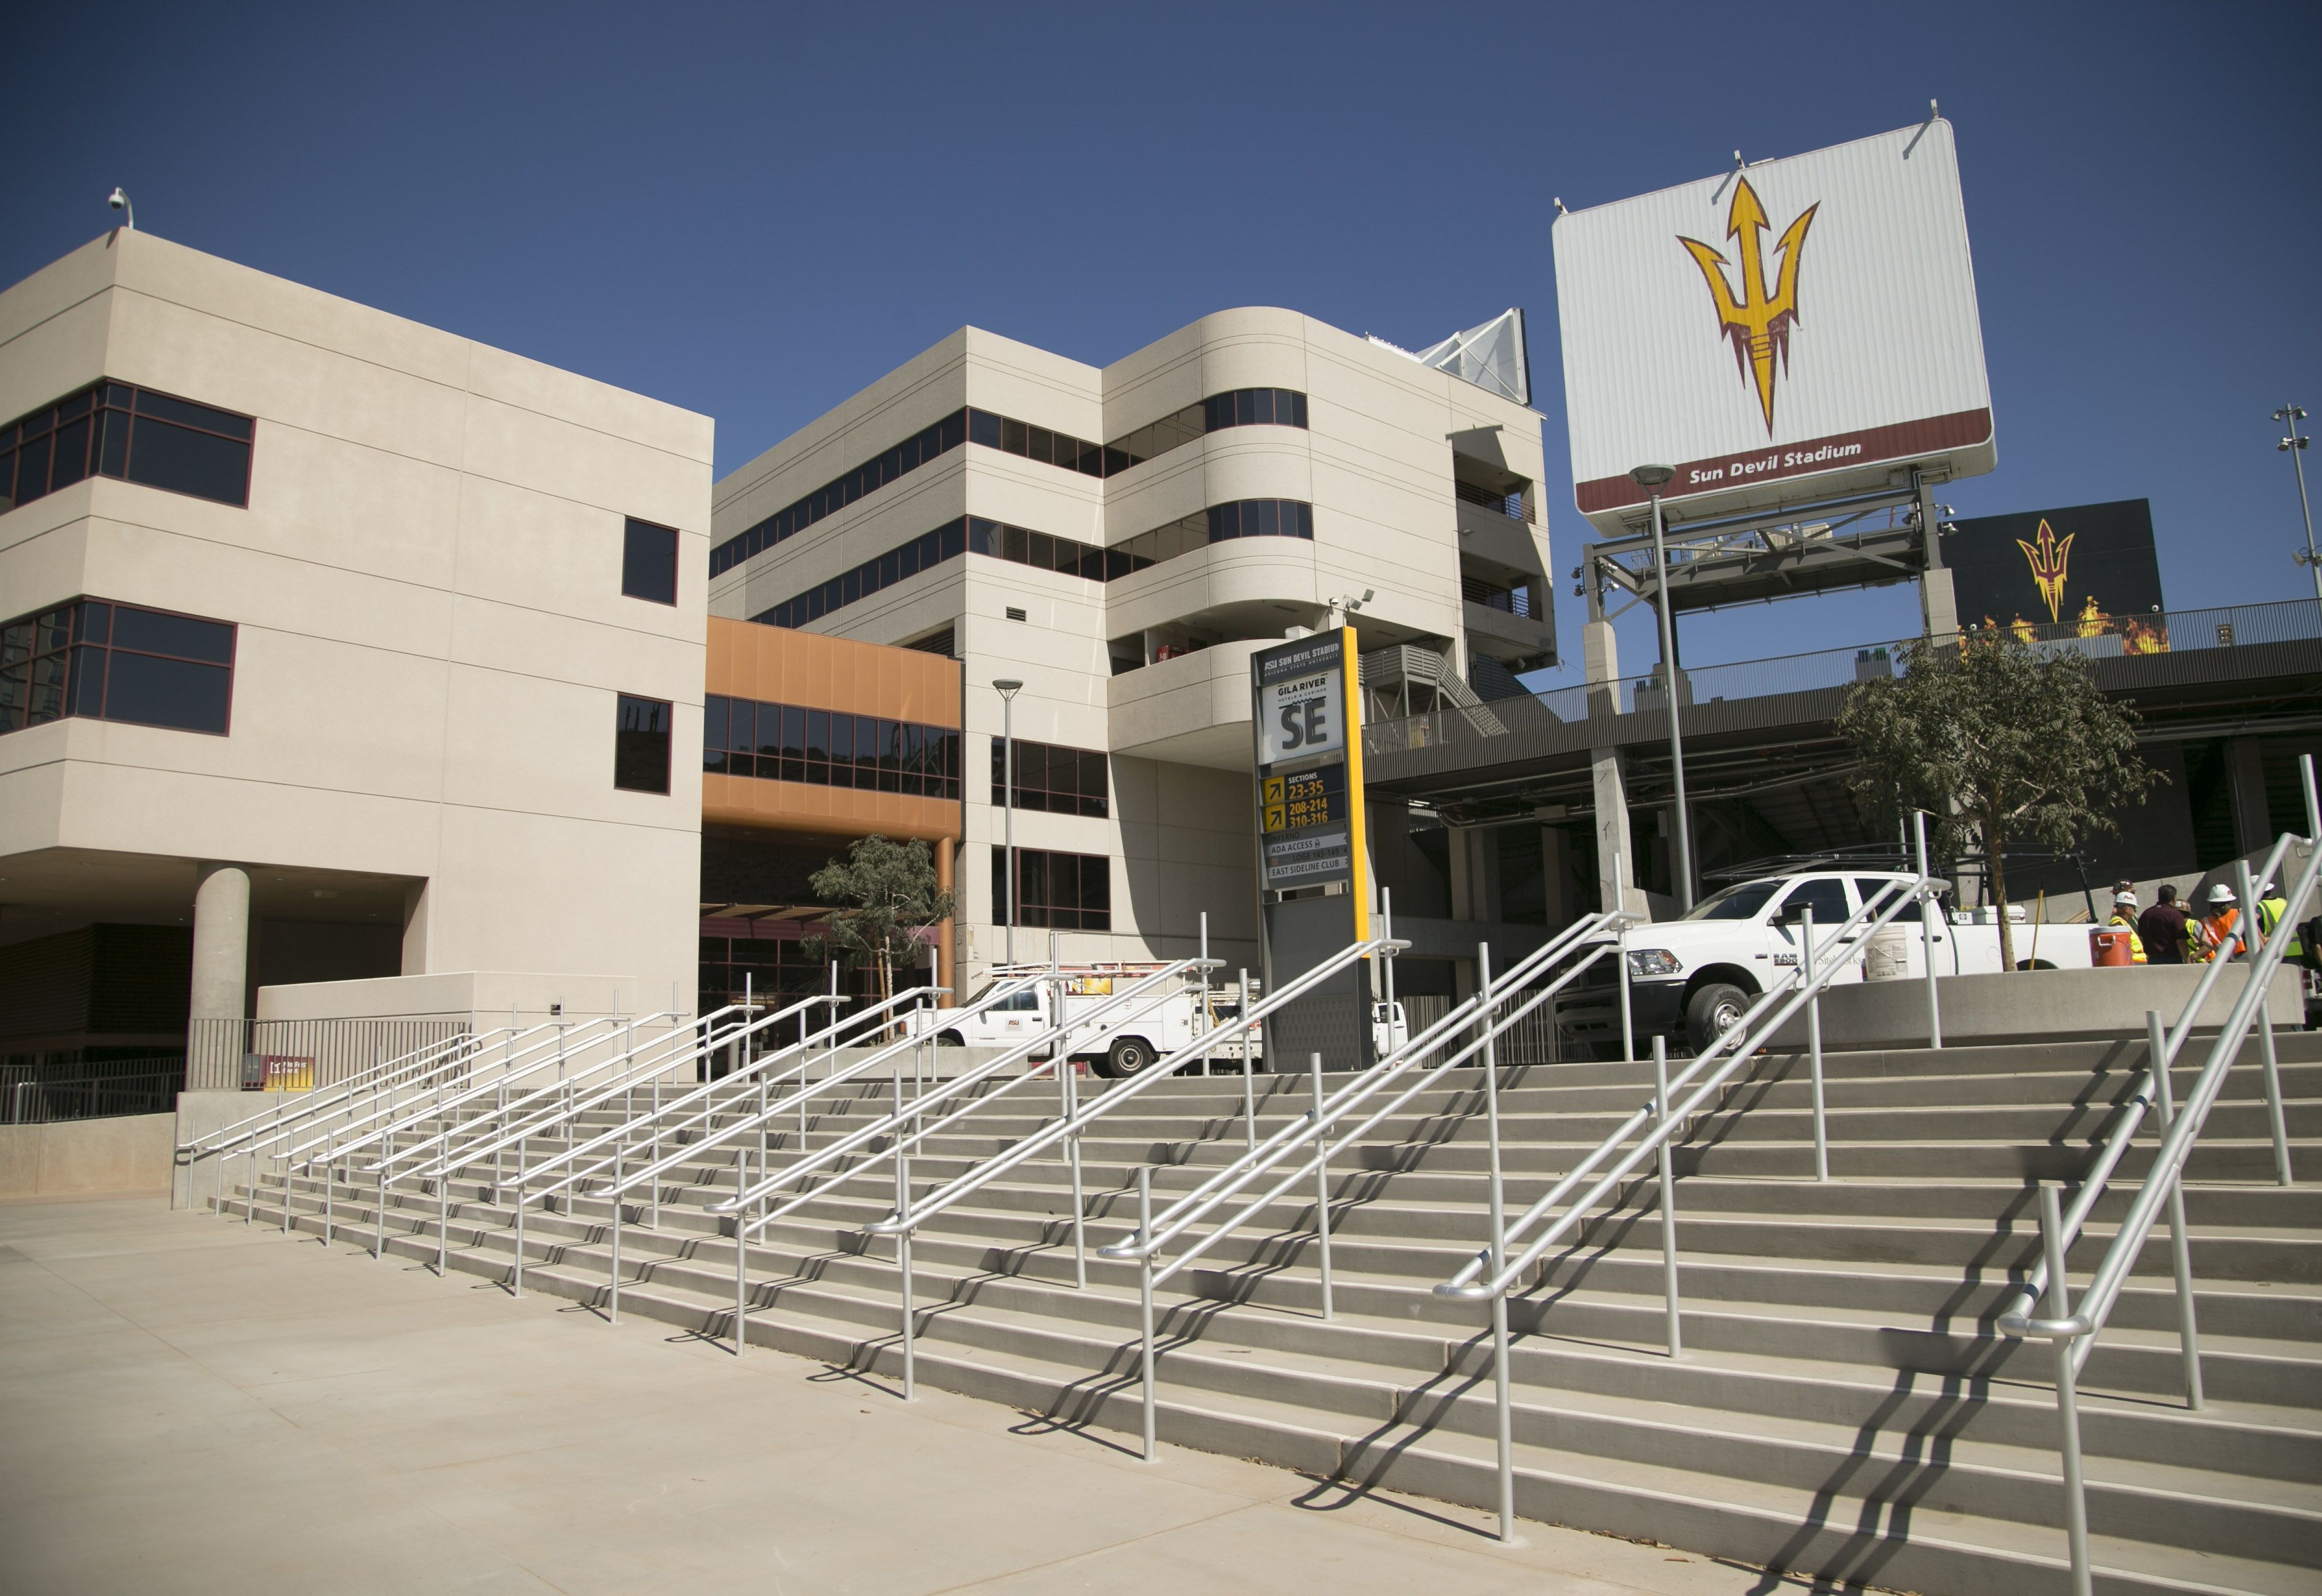 The new southeast side of Sun Devil Stadium in Tempe on Friday, August 31, 2018. ASU's season opener is at Sun Devil Stadium against University of Texas at San Antonio on Saturday, September 1.